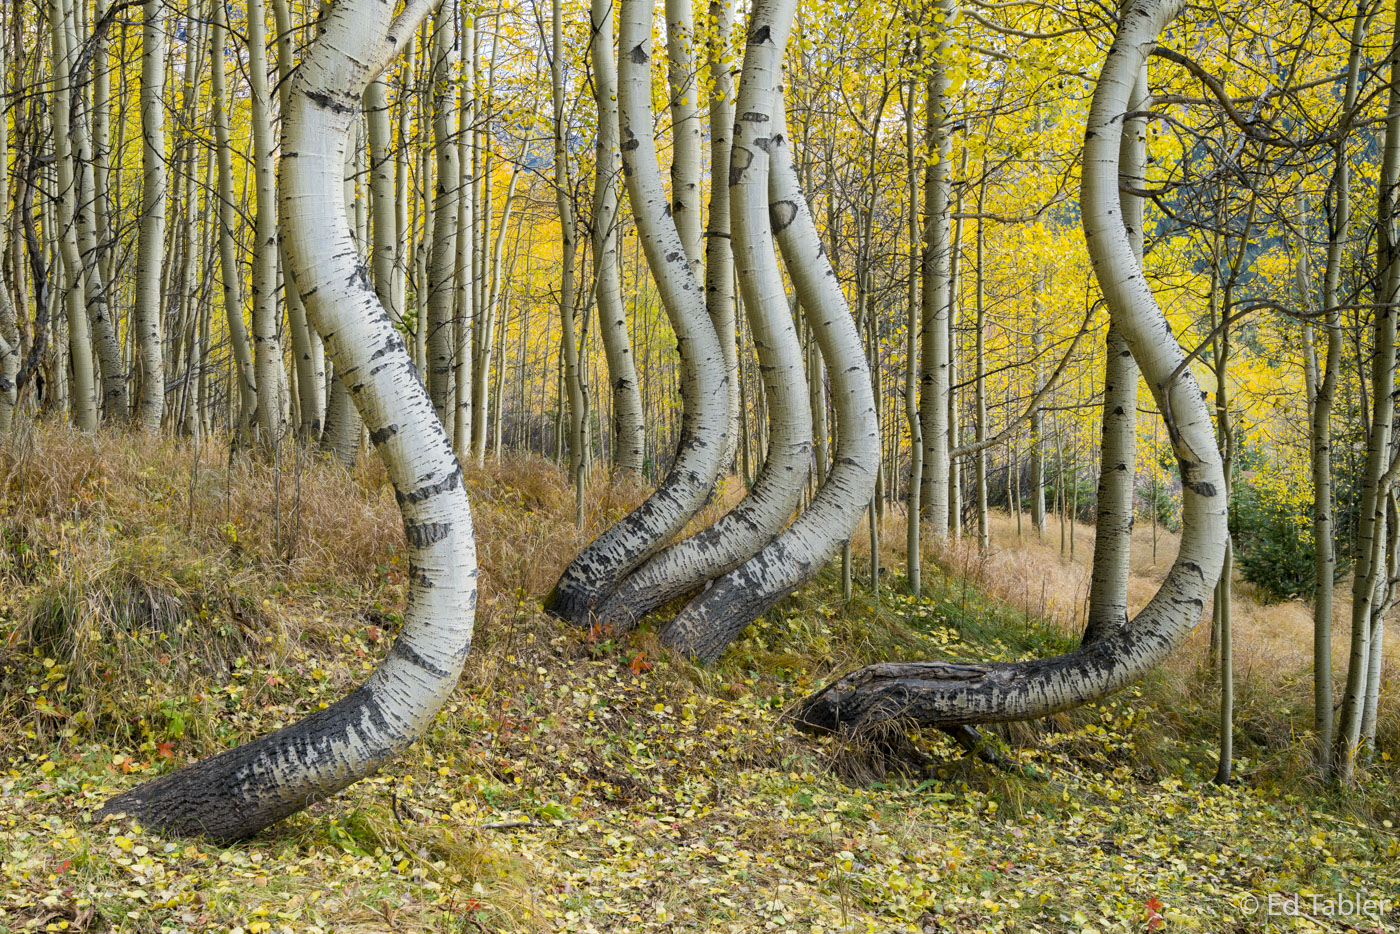 Surrealistic aspen,dancing aspen, photo